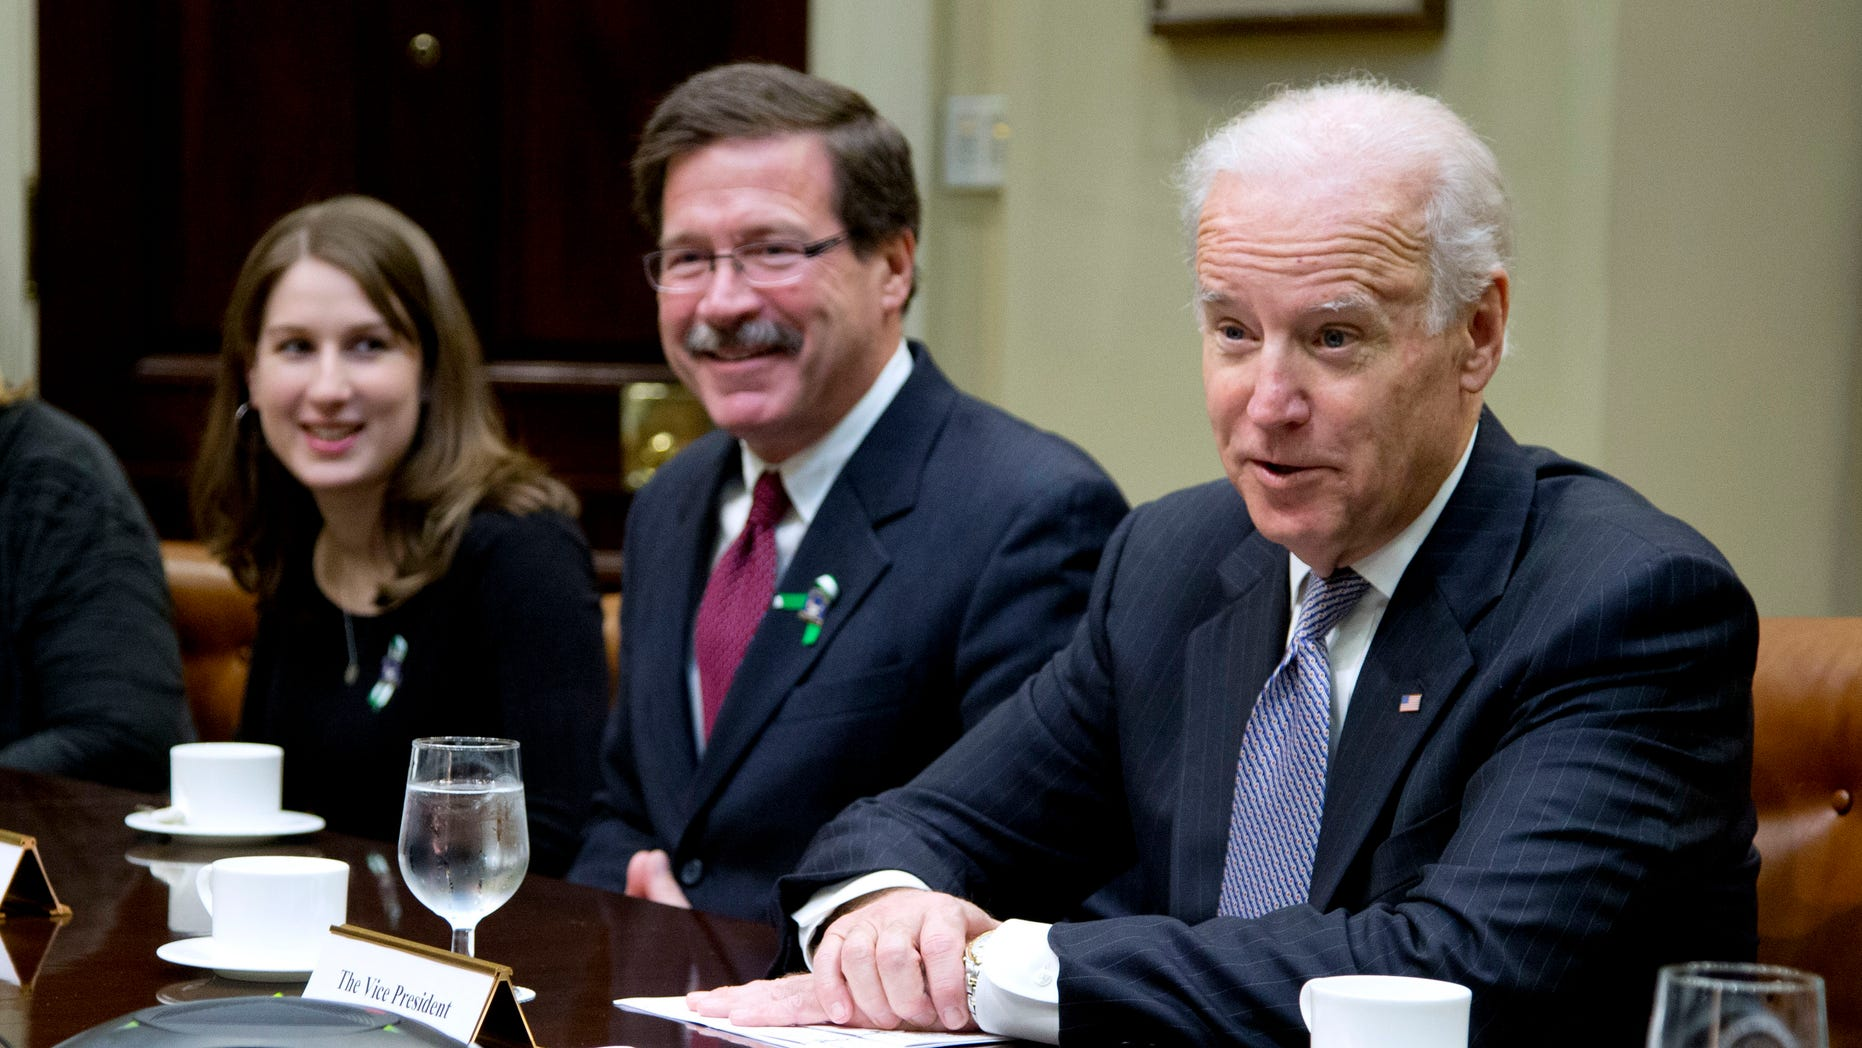 Vice President Biden speaks during a photo opportunity before a meeting with Newtown shooting family members and supporters, Tuesday, Dec. 10, 2013.